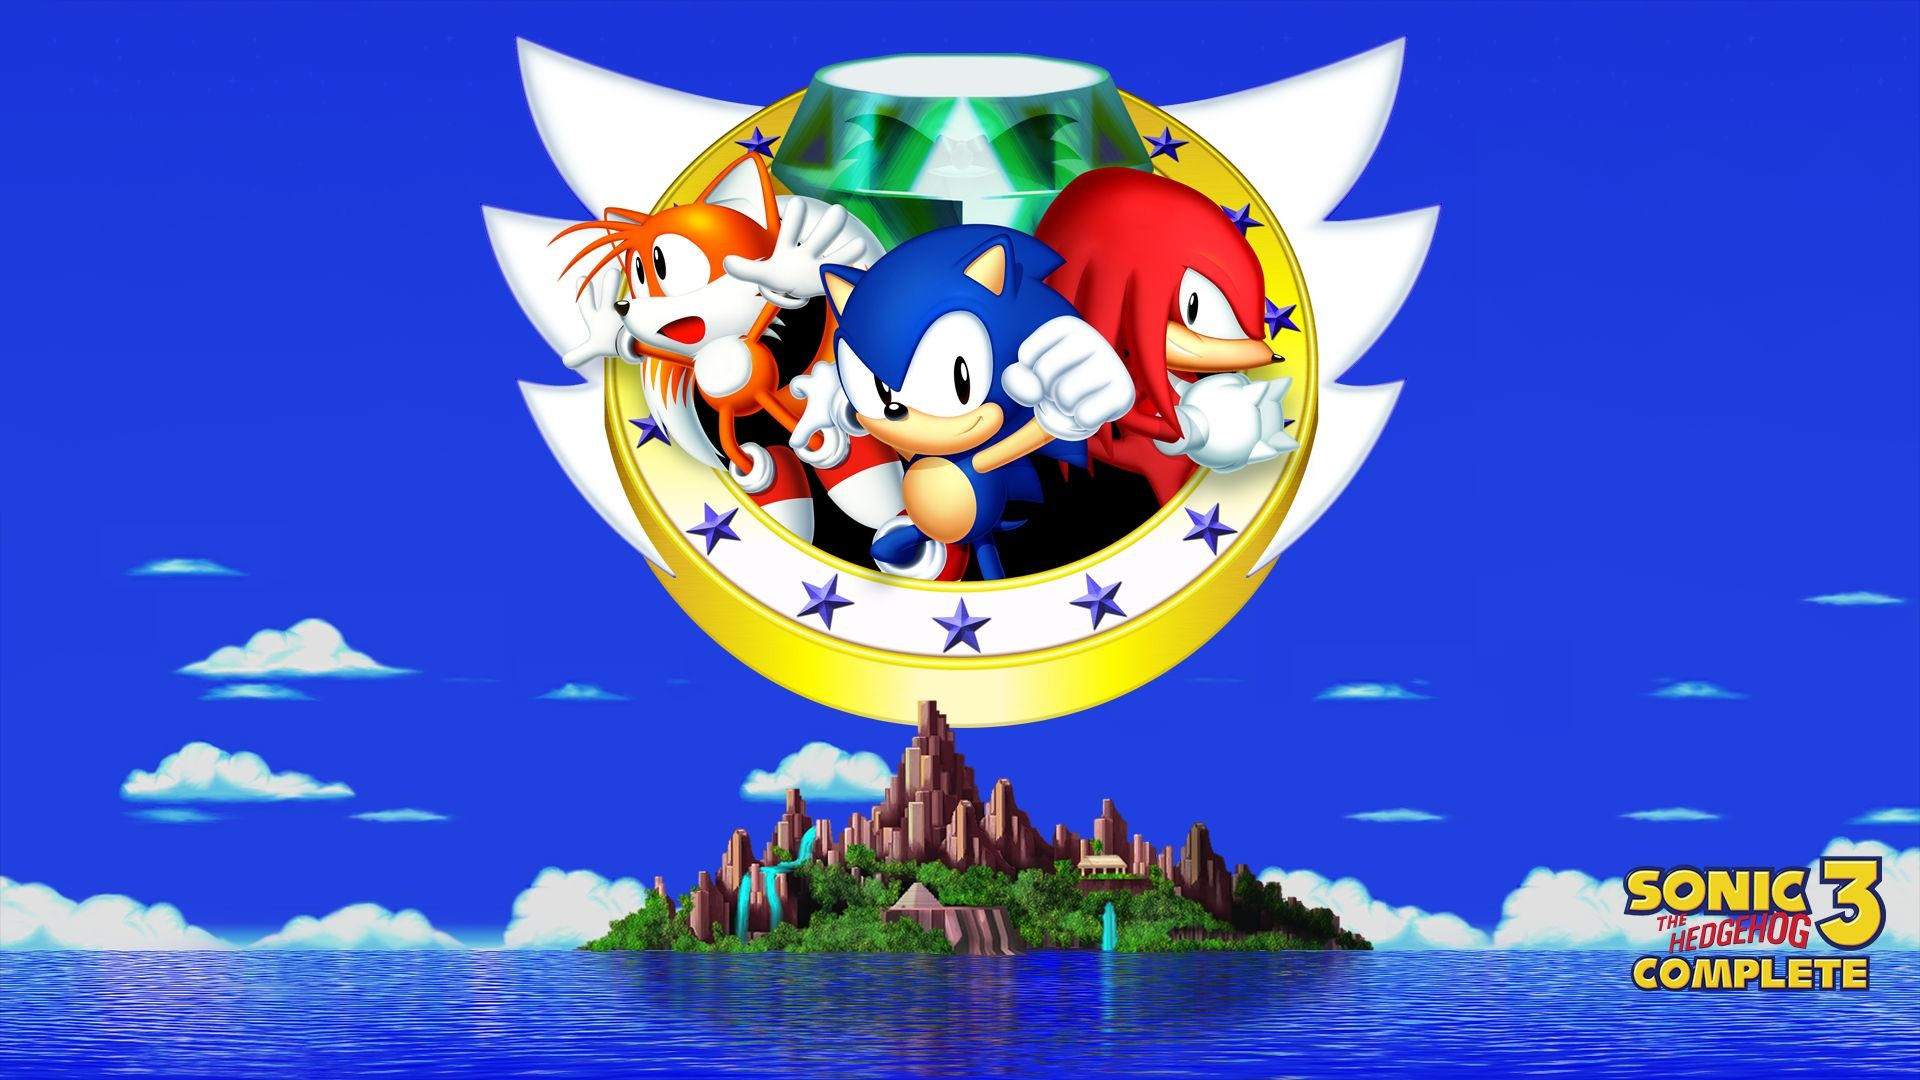 sonic wallpapers ·①